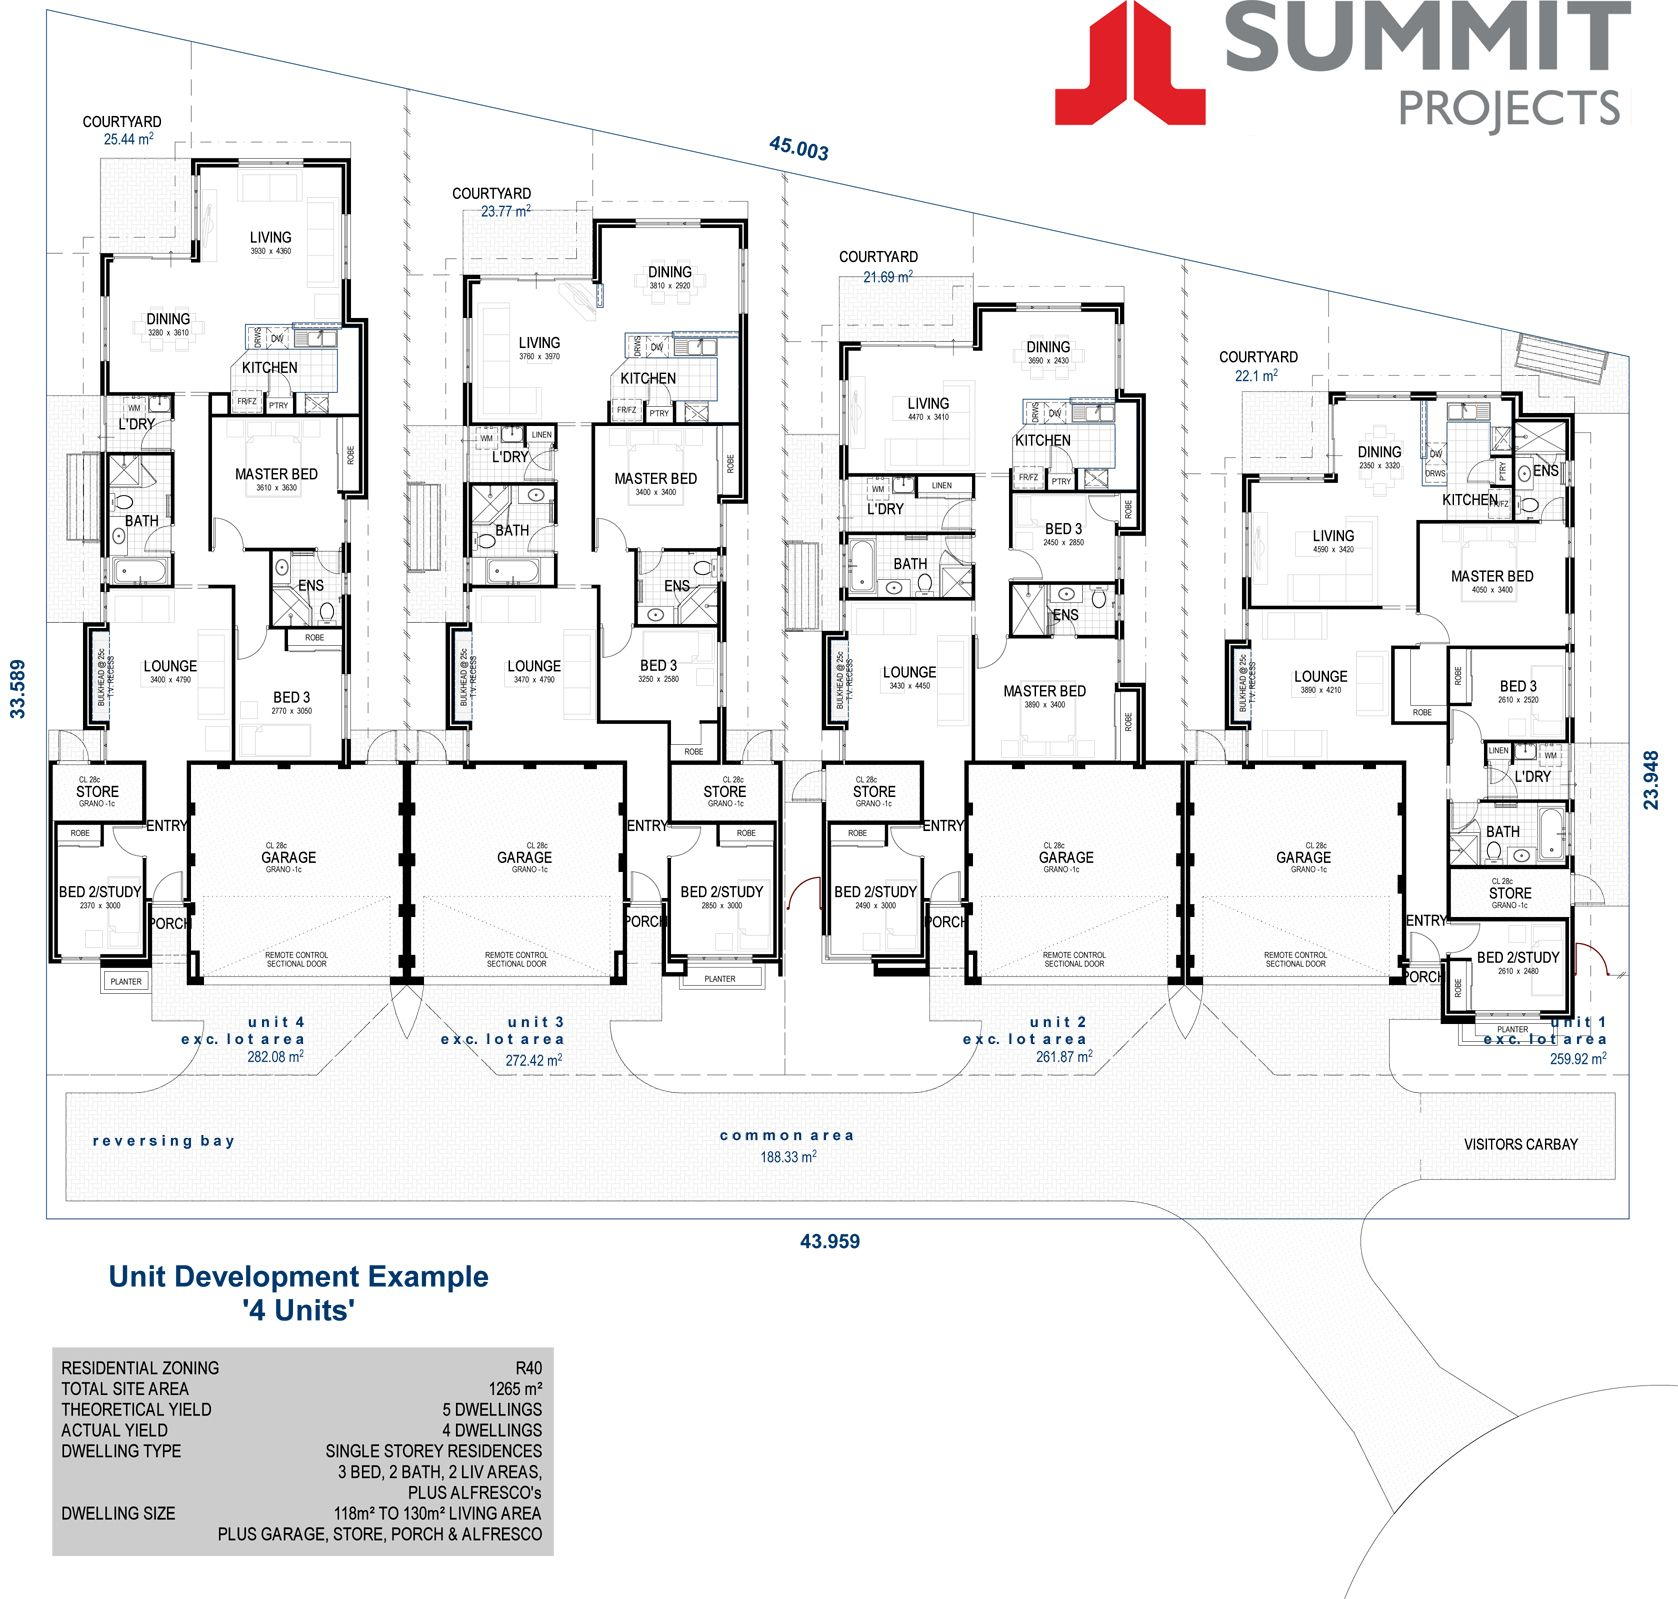 Floor plans for single storey multi units perth google for Multi unit floor plans